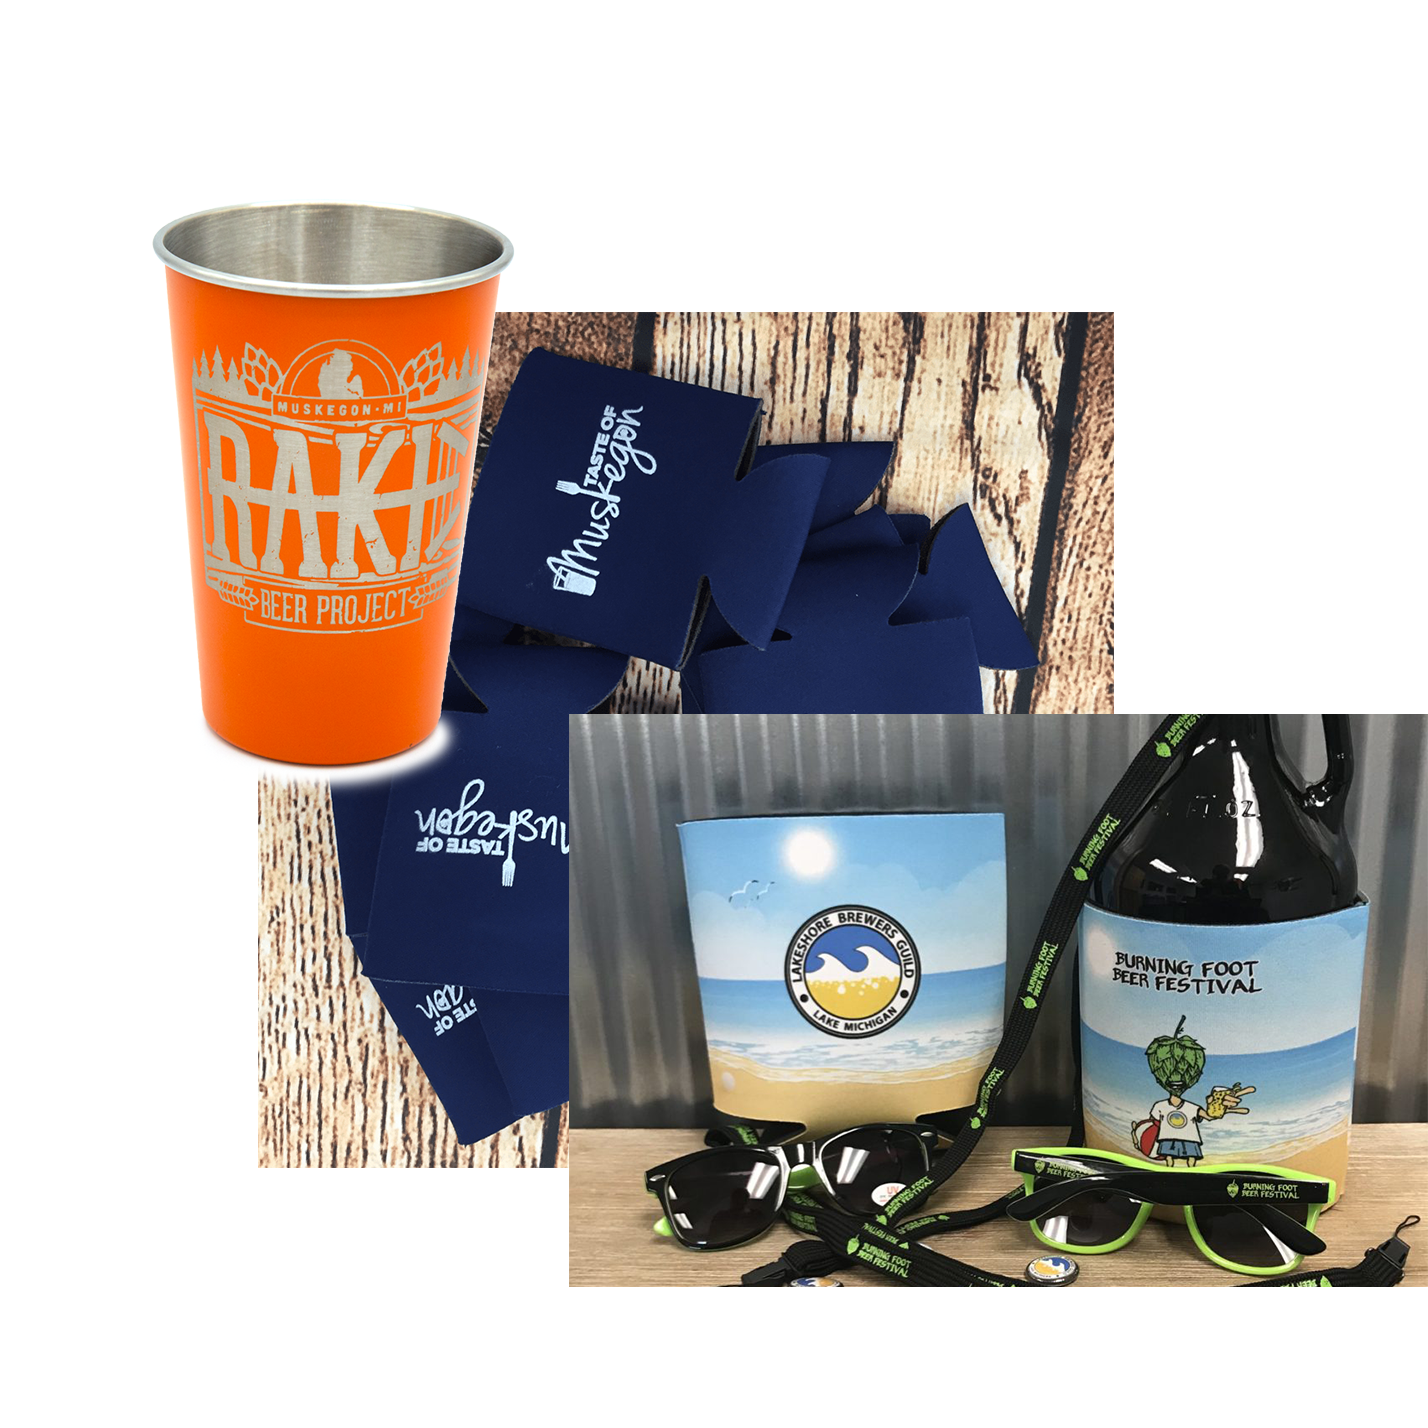 promo items for breweries and restaurants